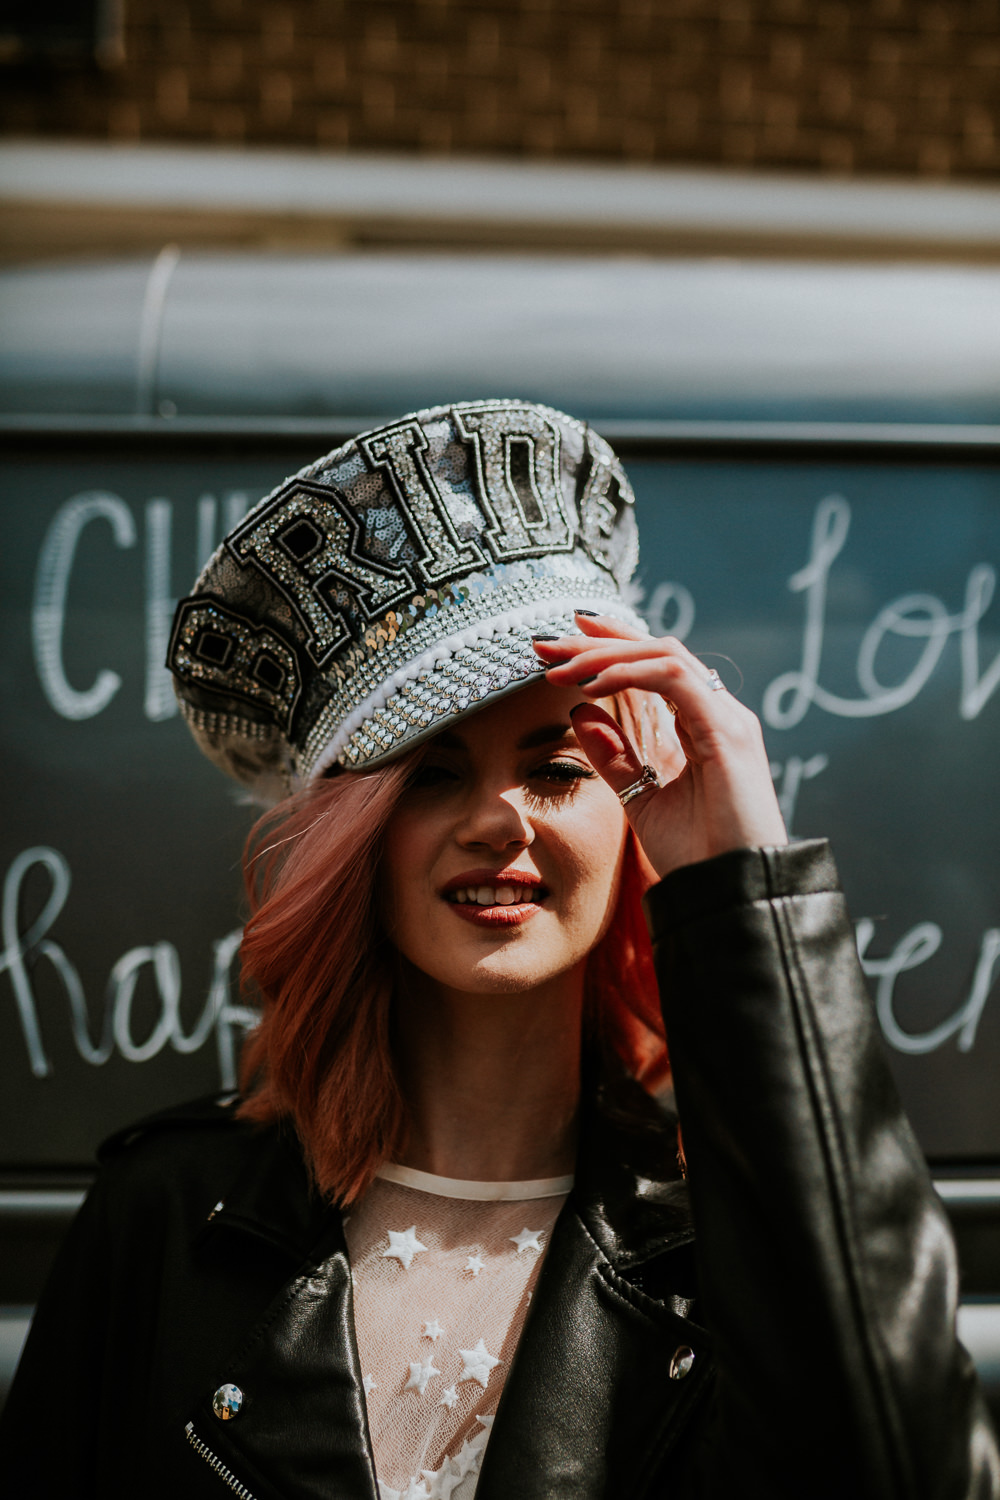 Bride Bridal Disco Hat Glitter Sequin Silver Neon Sign Wedding Ideas State Of Love and Trust Photography